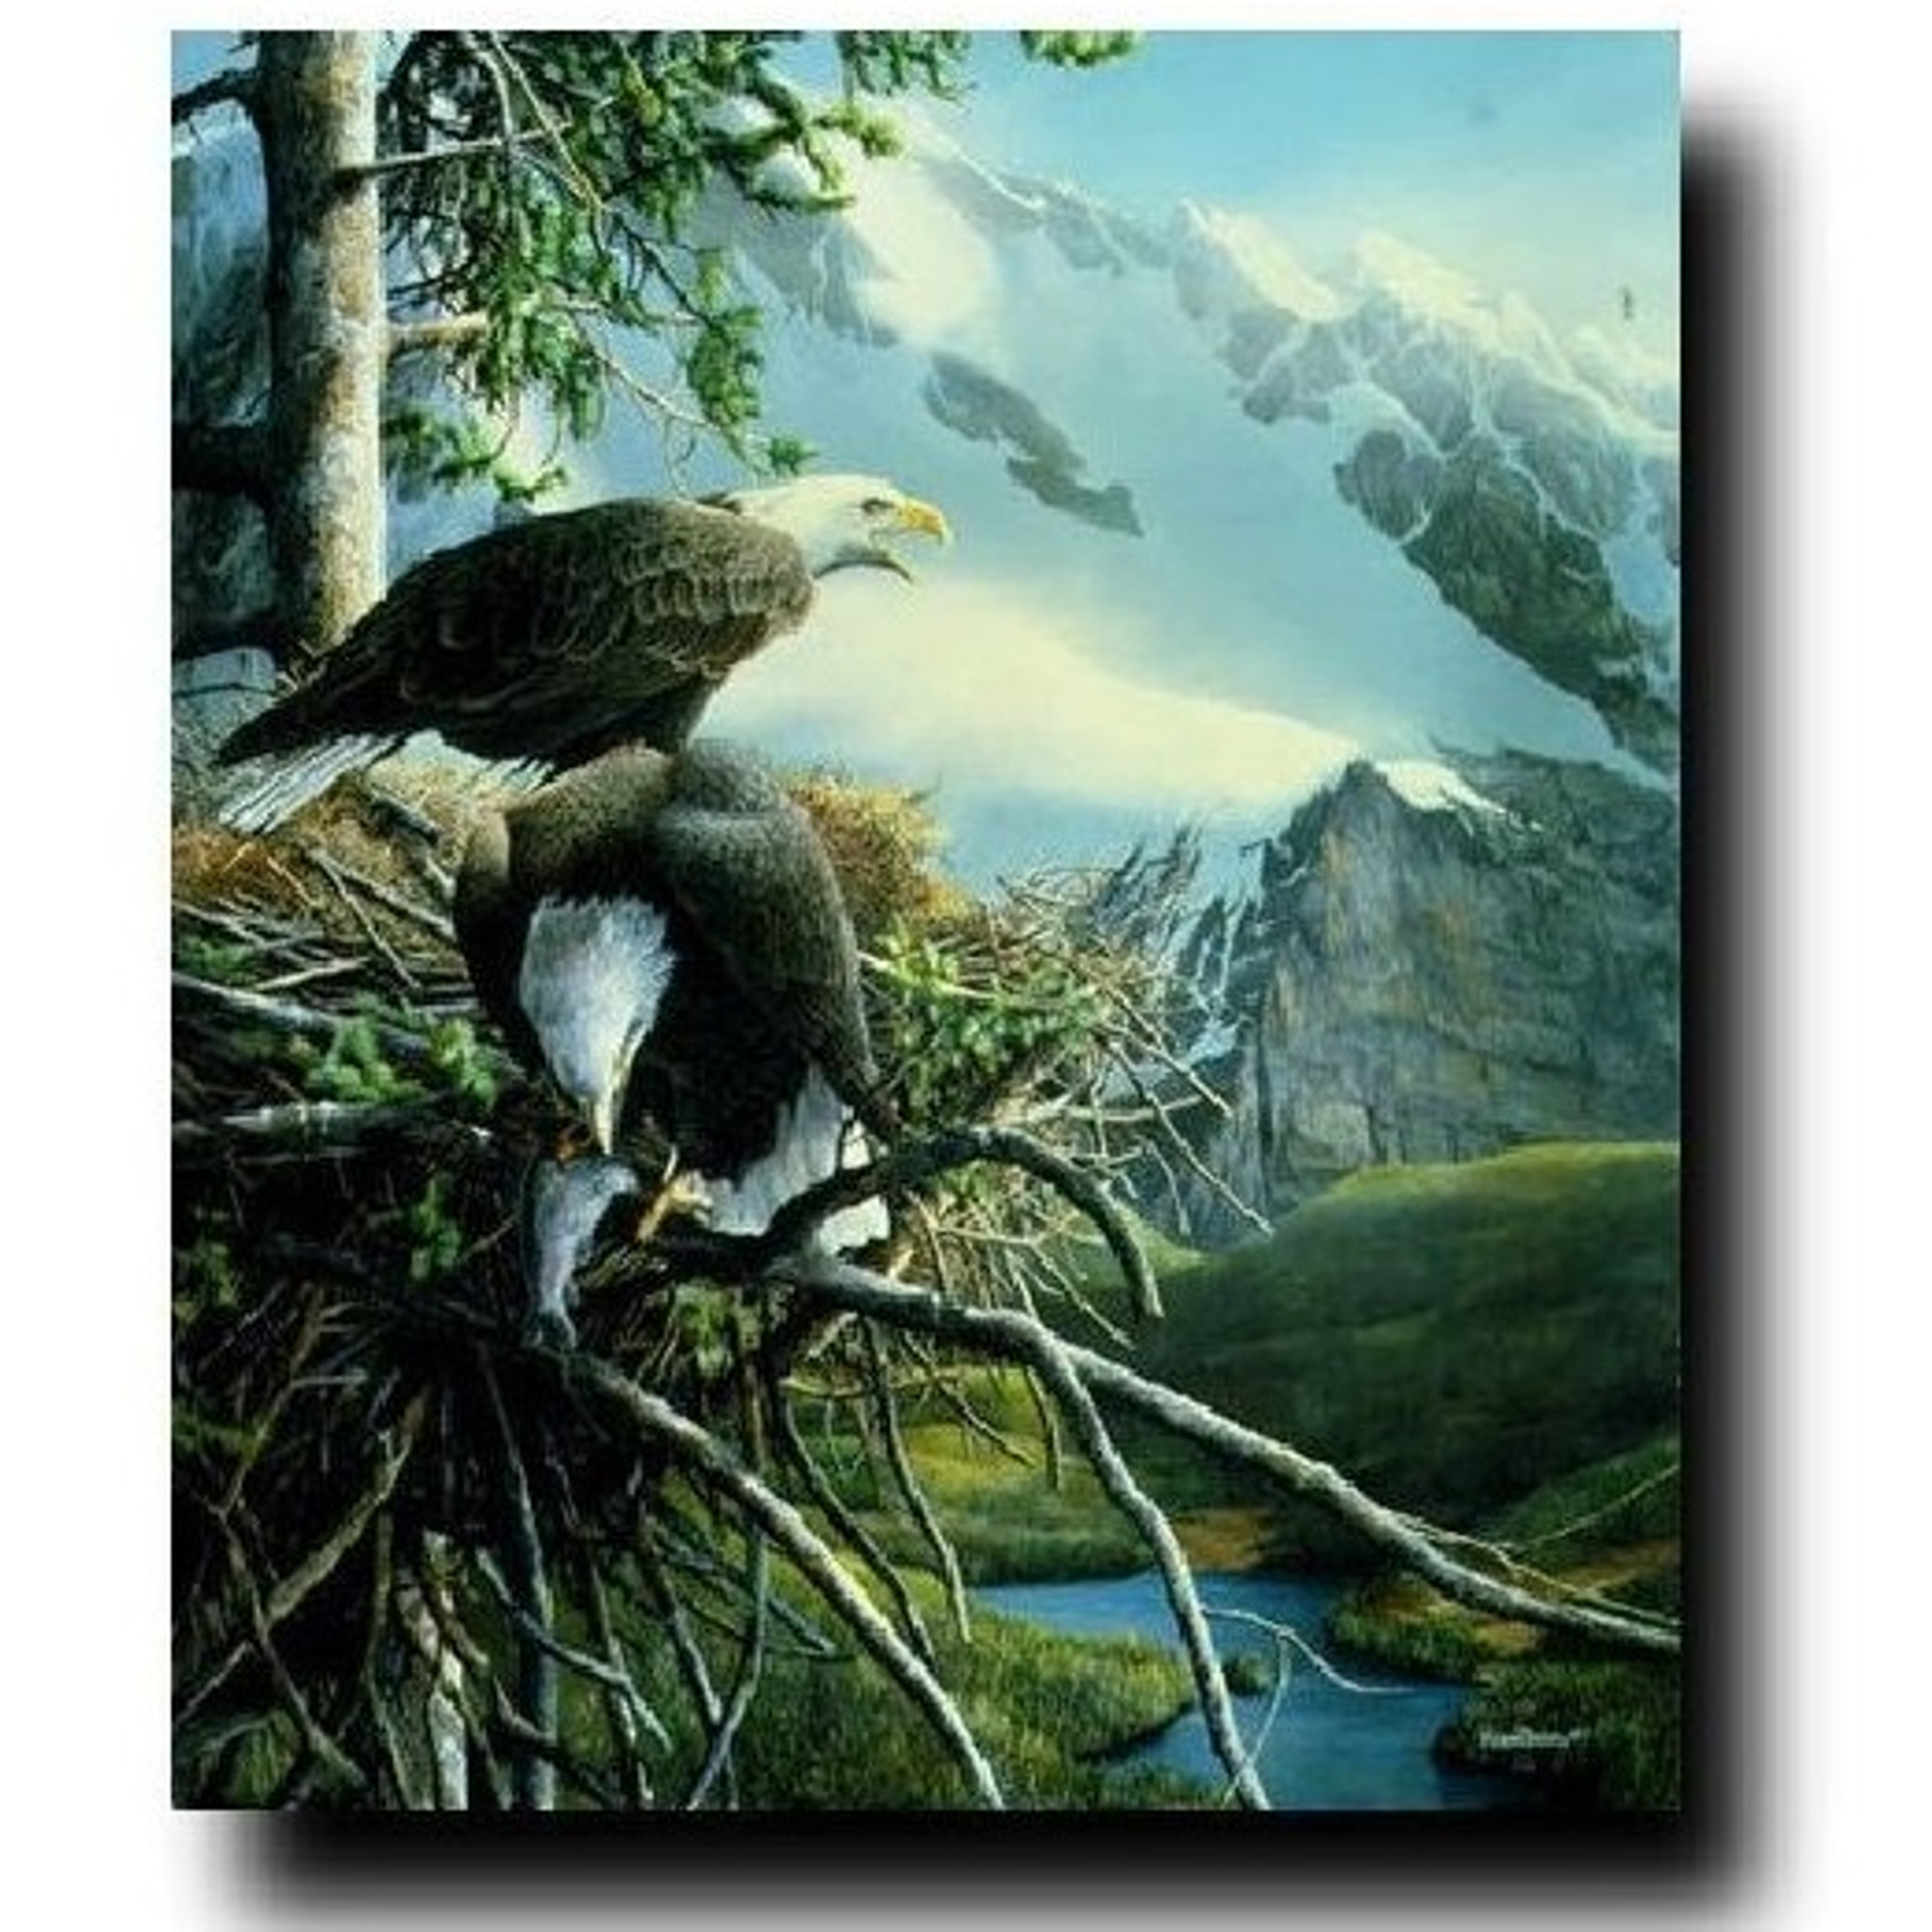 WILDLIFE ART PRINT Eagles with Lighthouse by Kevin Daniel Seascape Poster 11x14